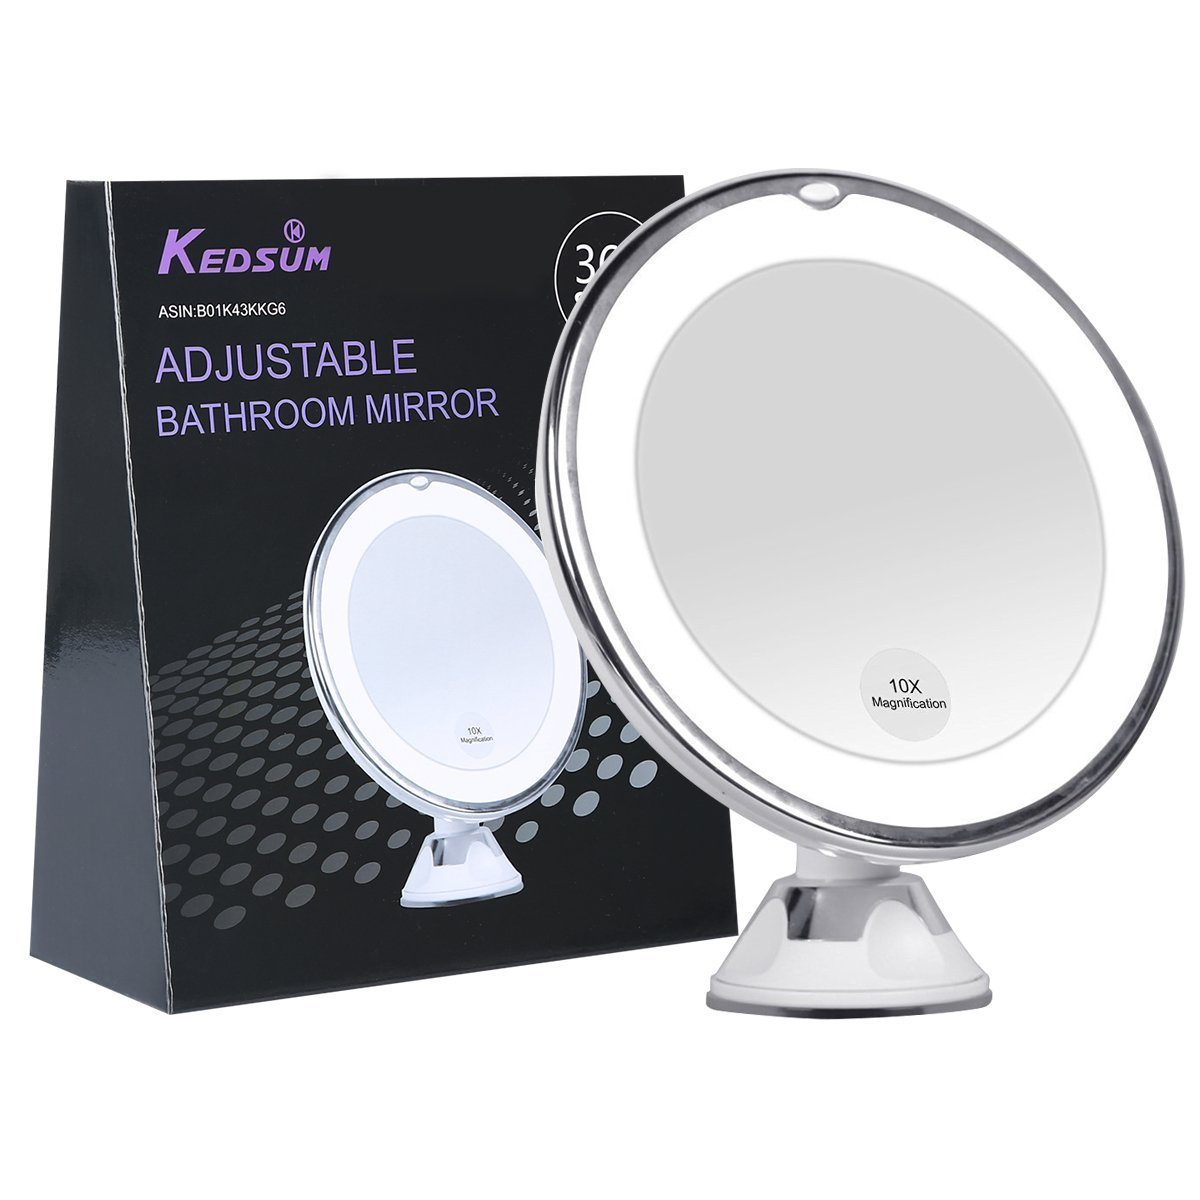 Kedsum 6 8 10x Magnifying Led Lighted Makeup Mirror Bathroom Vanity With Strong Suction Cup Rotates 360 Degrees Daylight Color Battery Operated